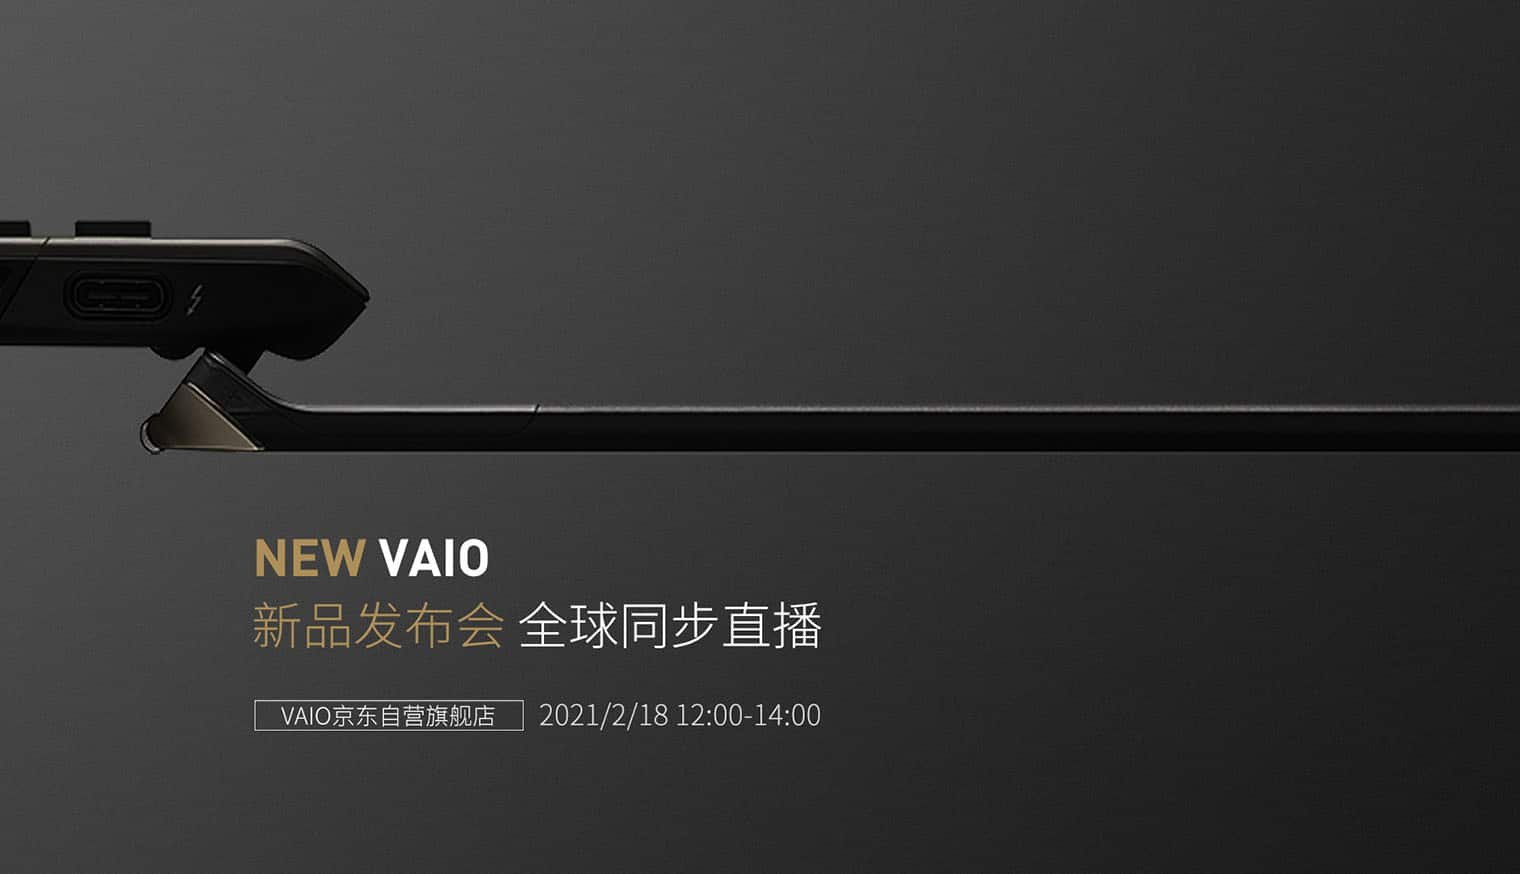 new vaio laptop coming soon